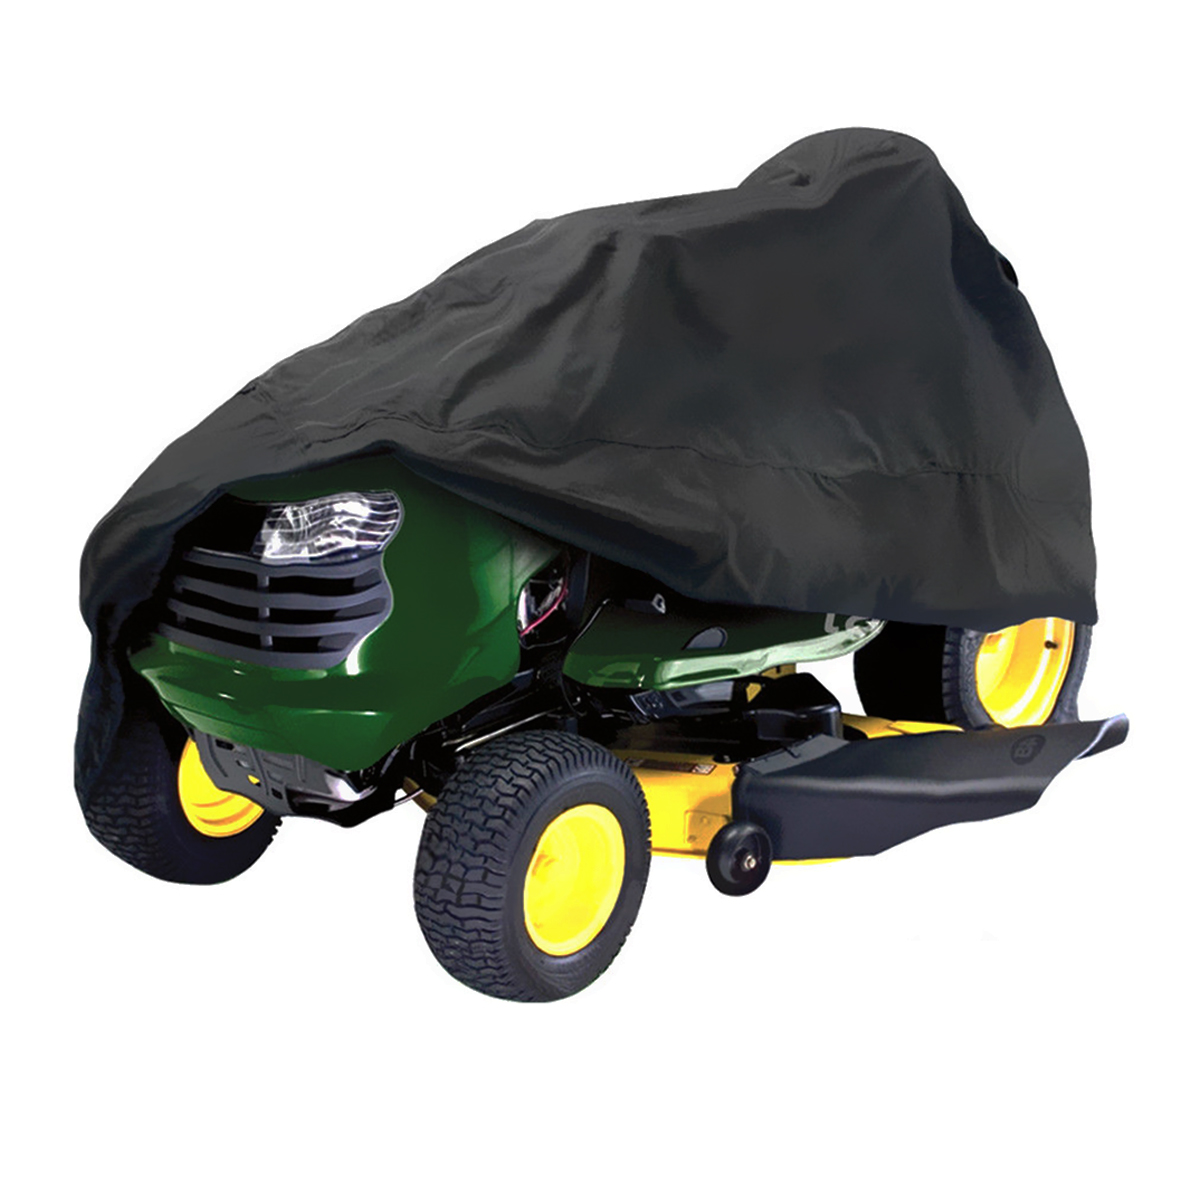 182x111x116cm Black Waterproof Riding Lawnmower Tractor Cover UV